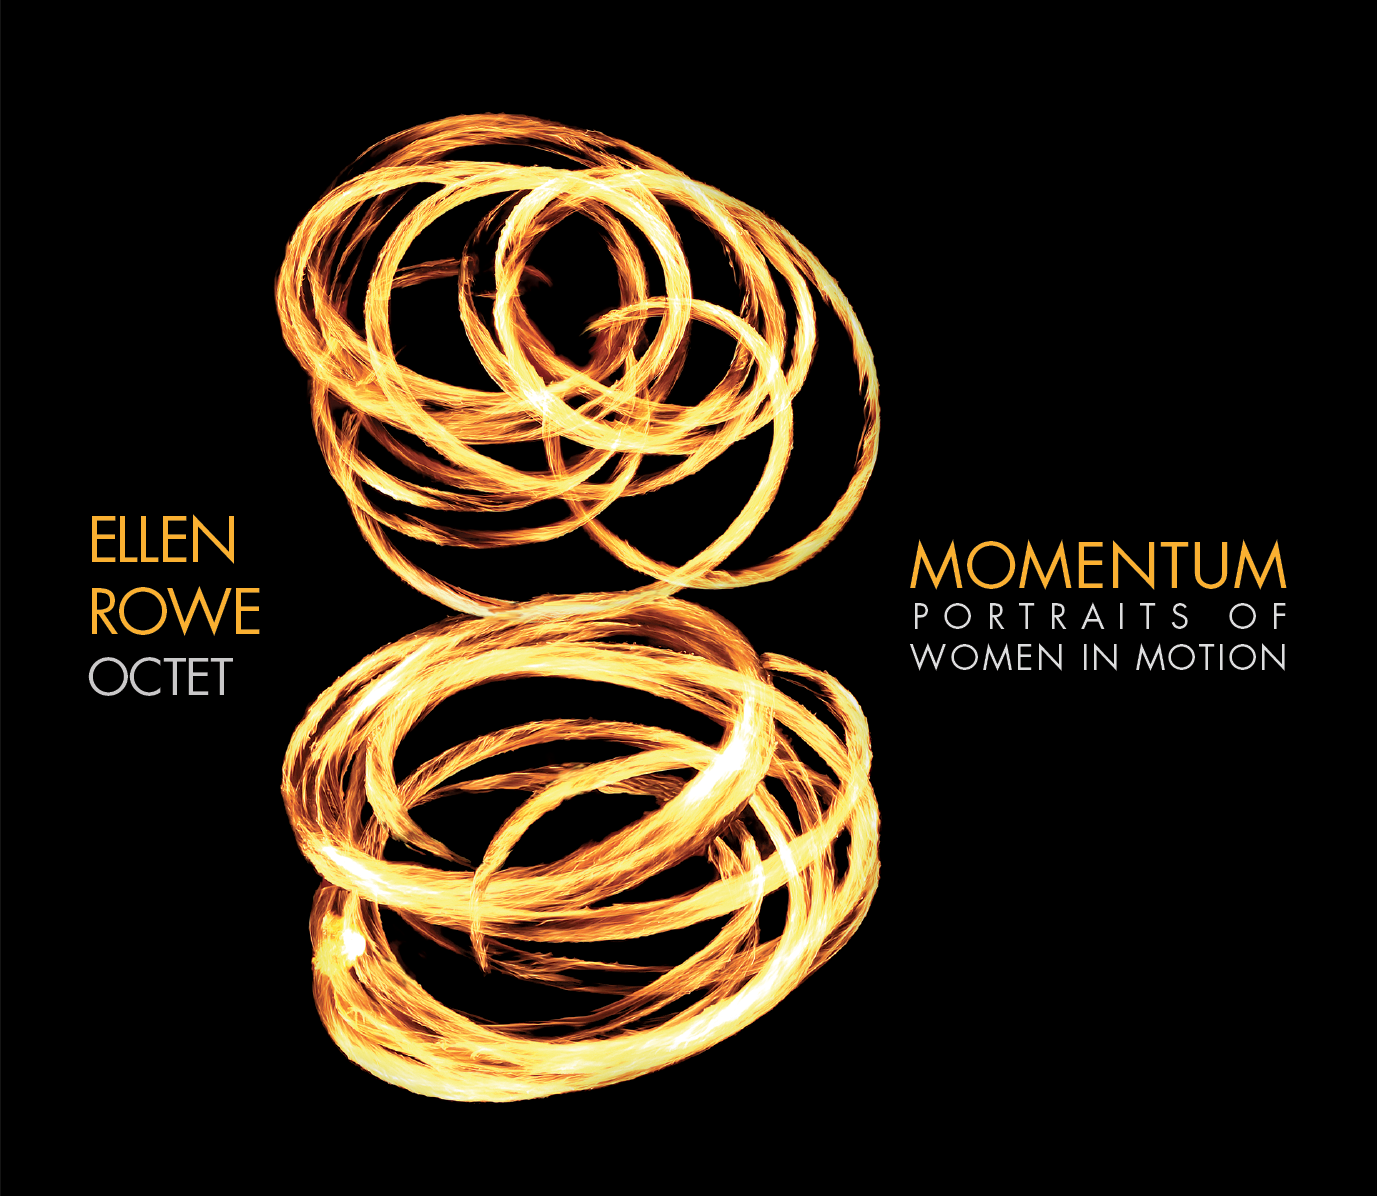 REVIEW: Ellen Rowe Octet's Momentum: Portraits in Women in Motion Reviewed by All About Jazz